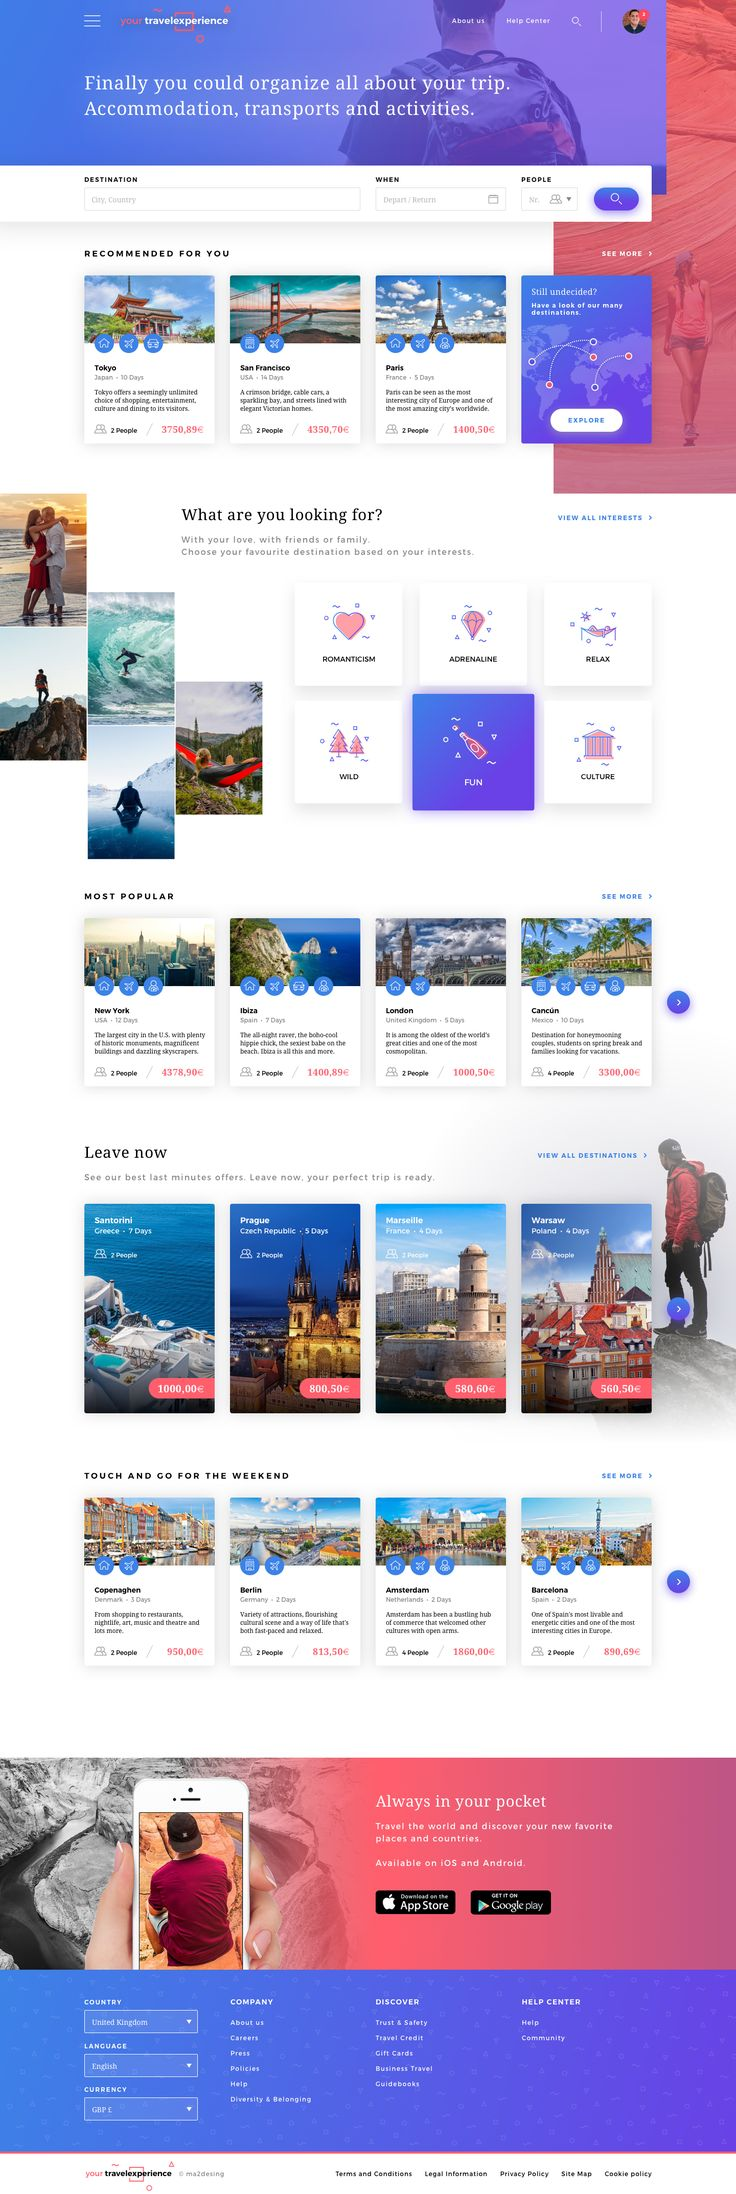 Swinging couple private homepages